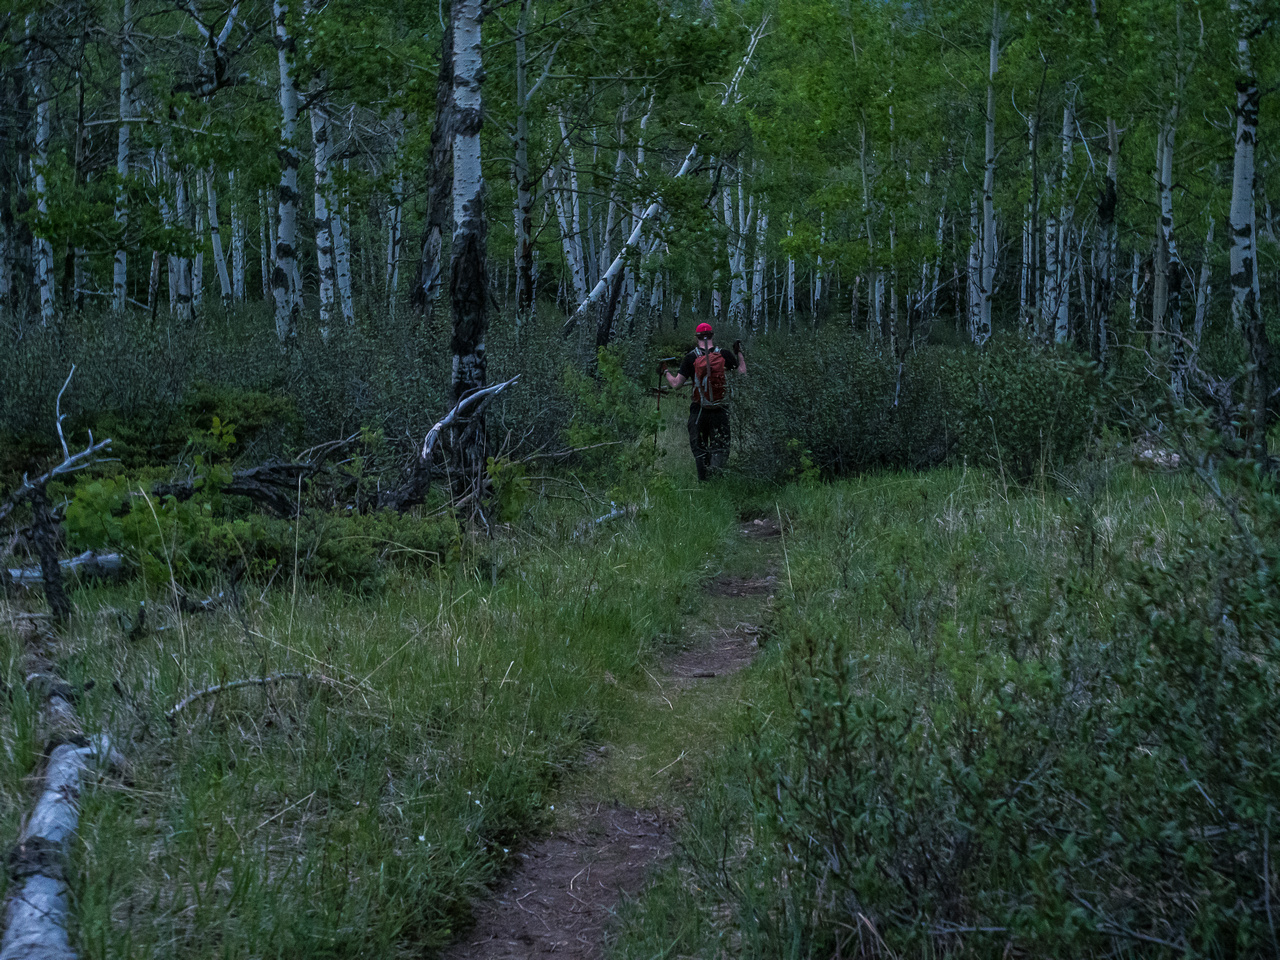 Heading towards the campground in fading light.